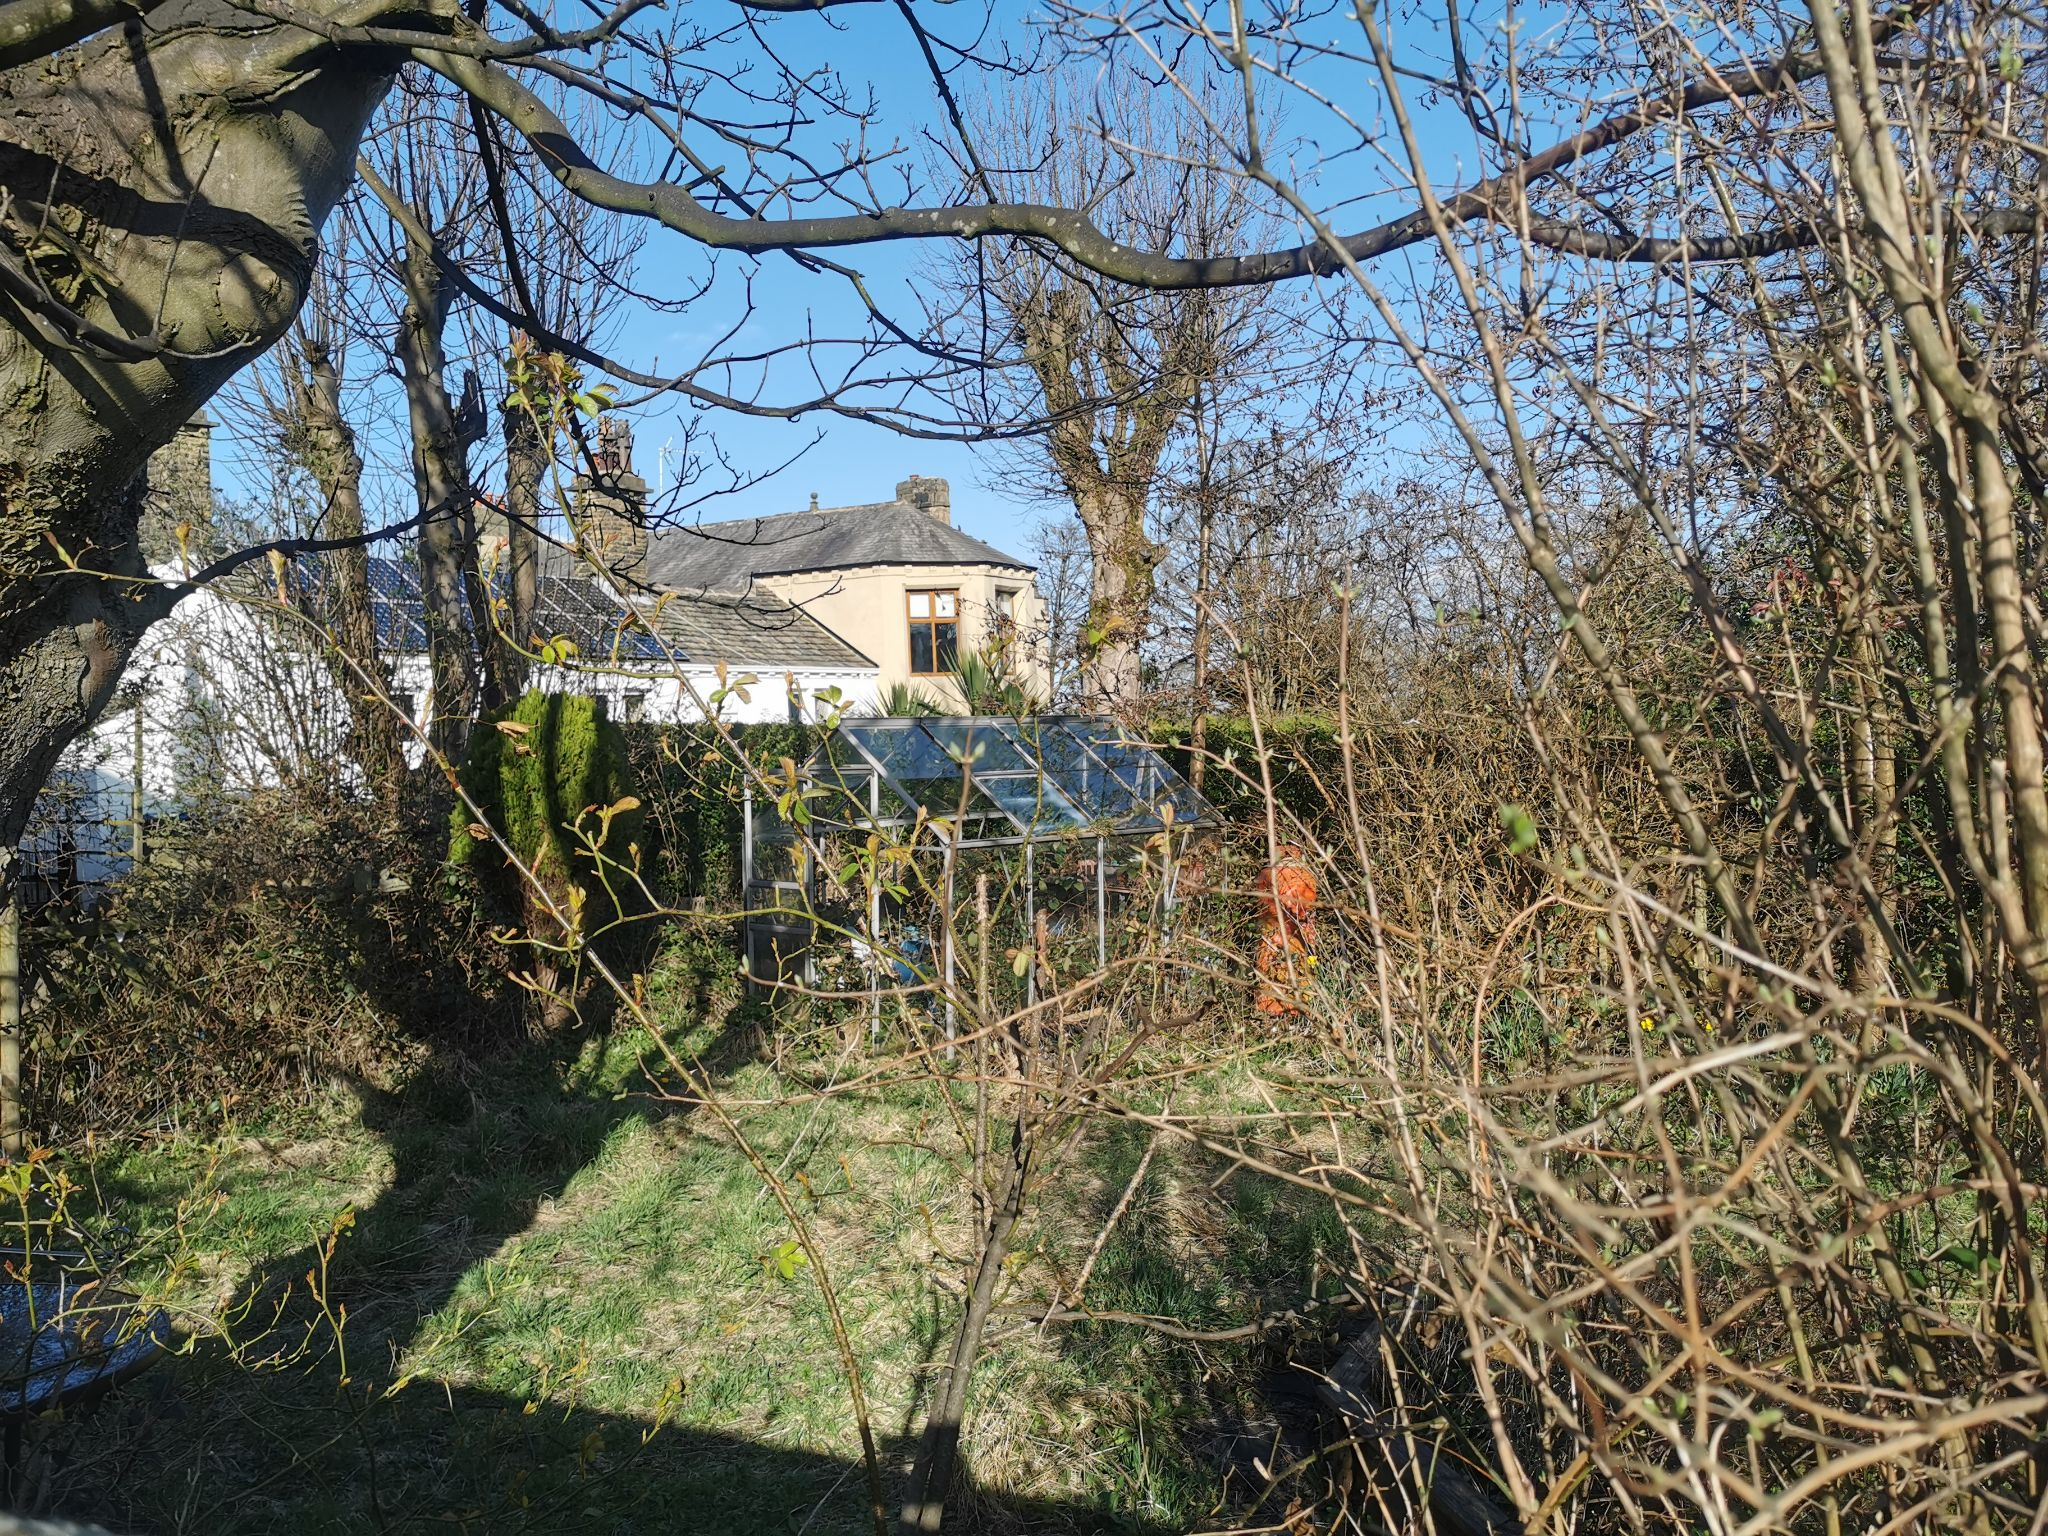 3 bedroom detached house For Sale in Bradford - Photograph 4.